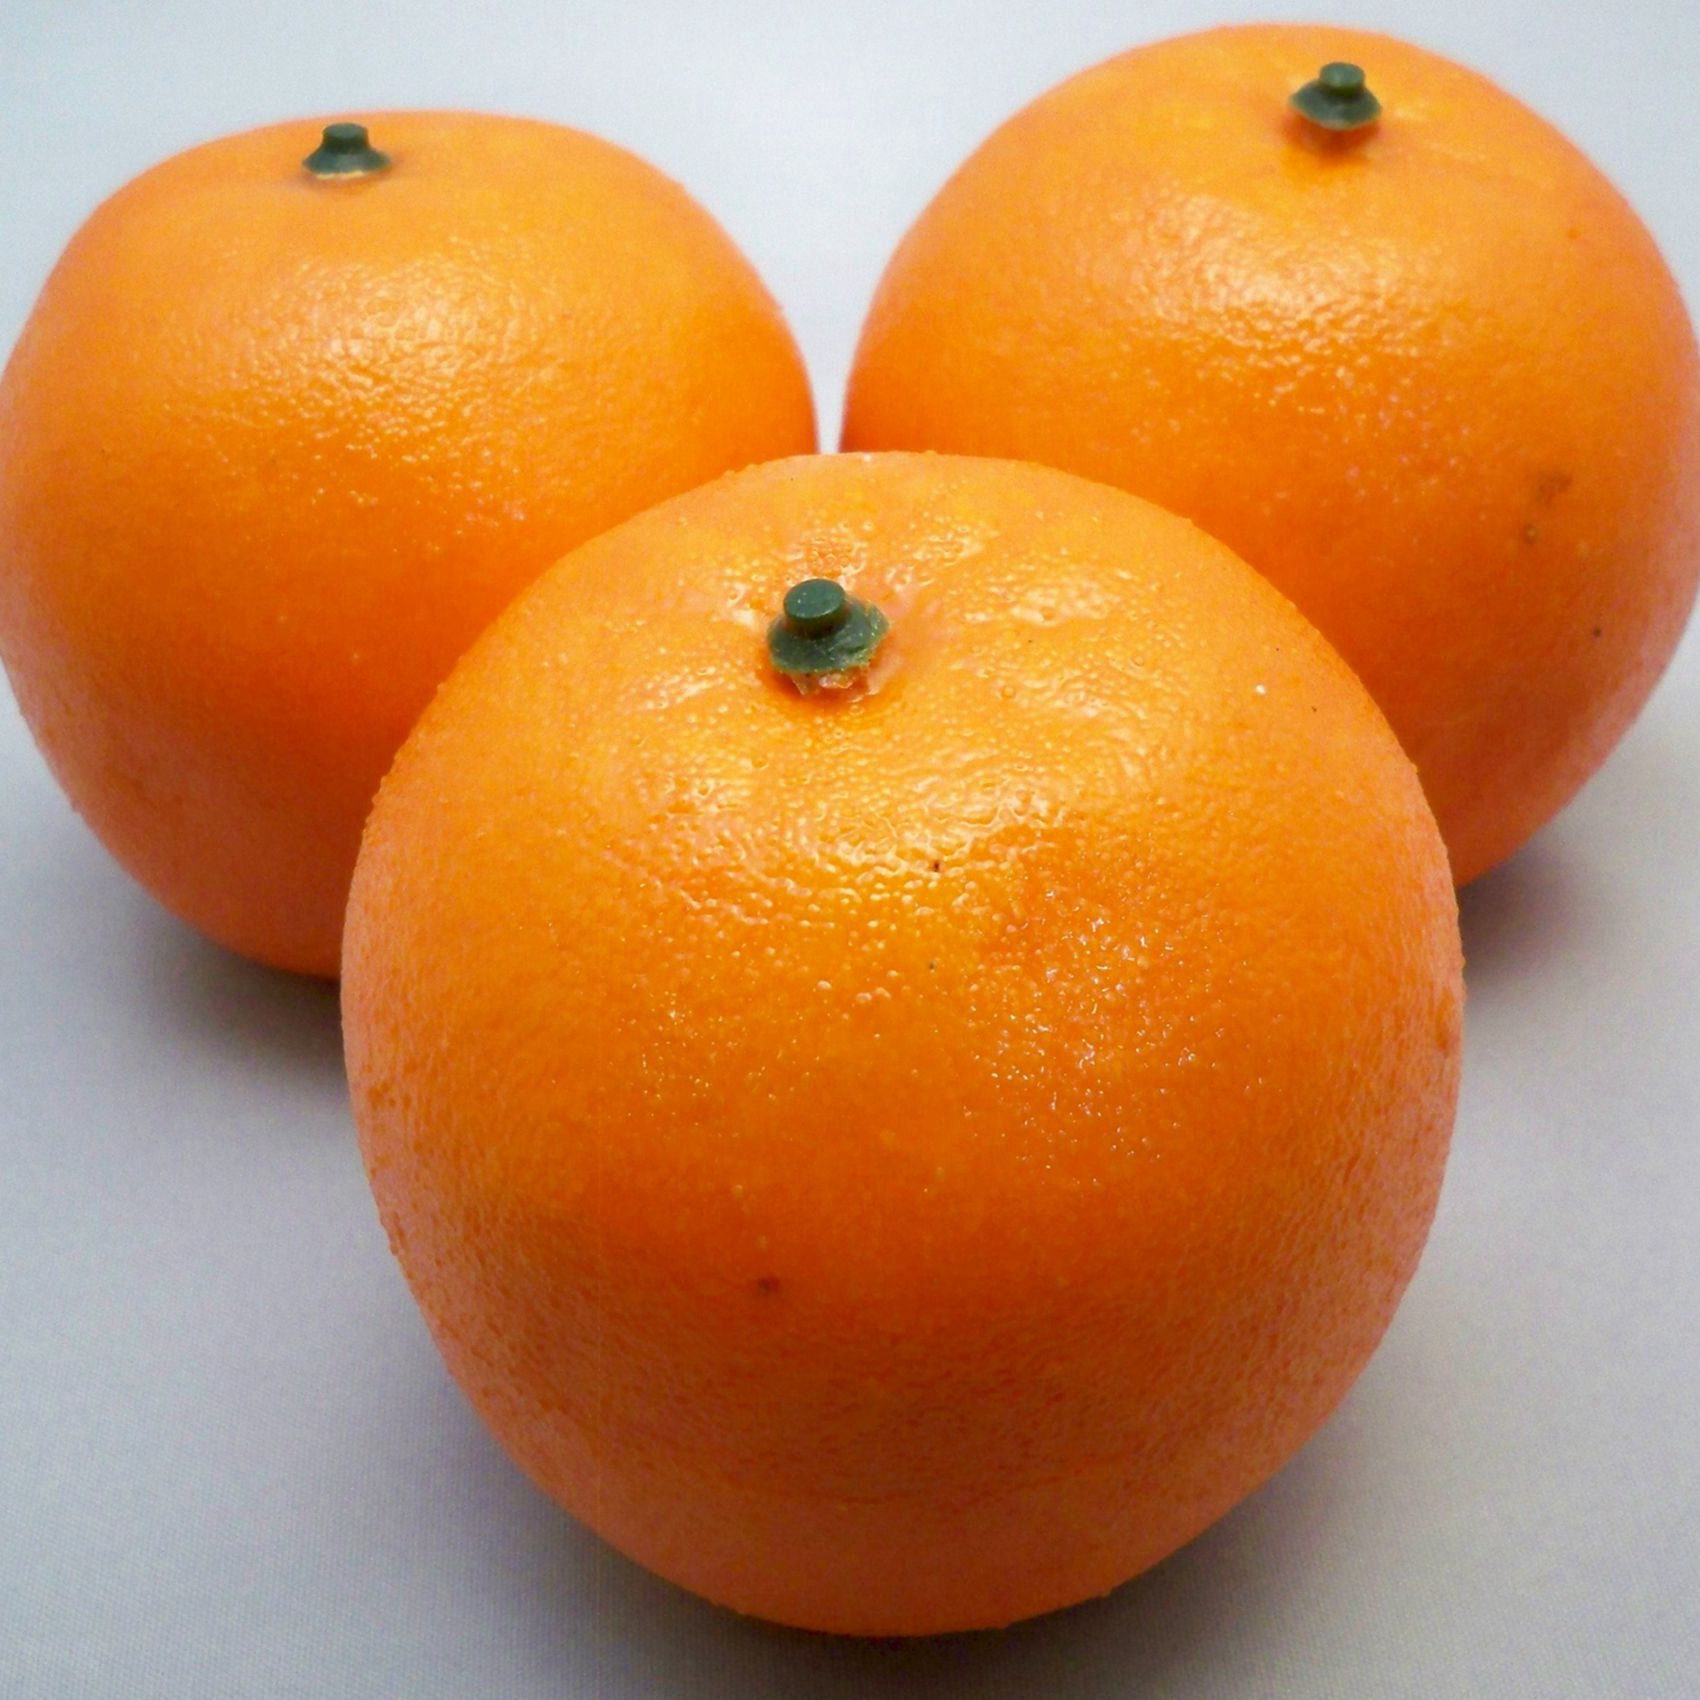 3 artificial oranges decorative fruit c3e1 n6s6 ebay for Artificial pears decoration